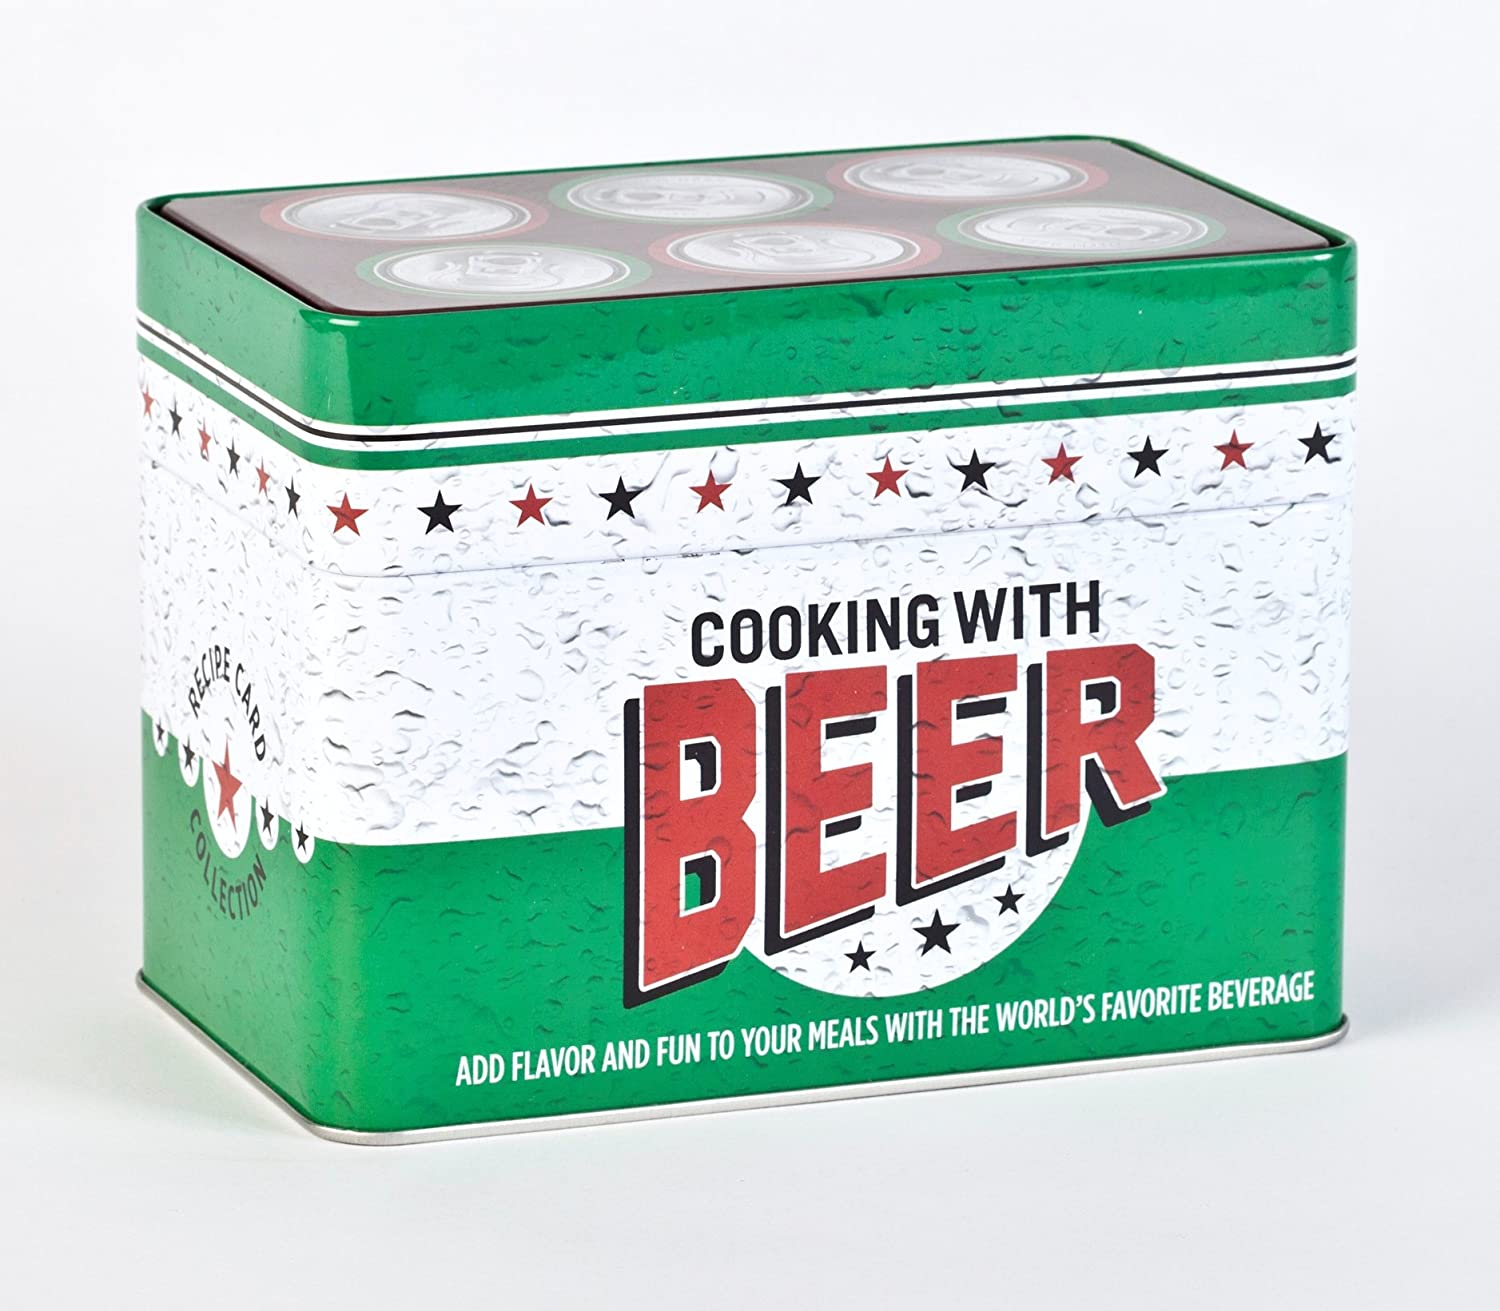 Tin Cooking with Beer Publications International Ltd. Cooking / Beverages / Beer